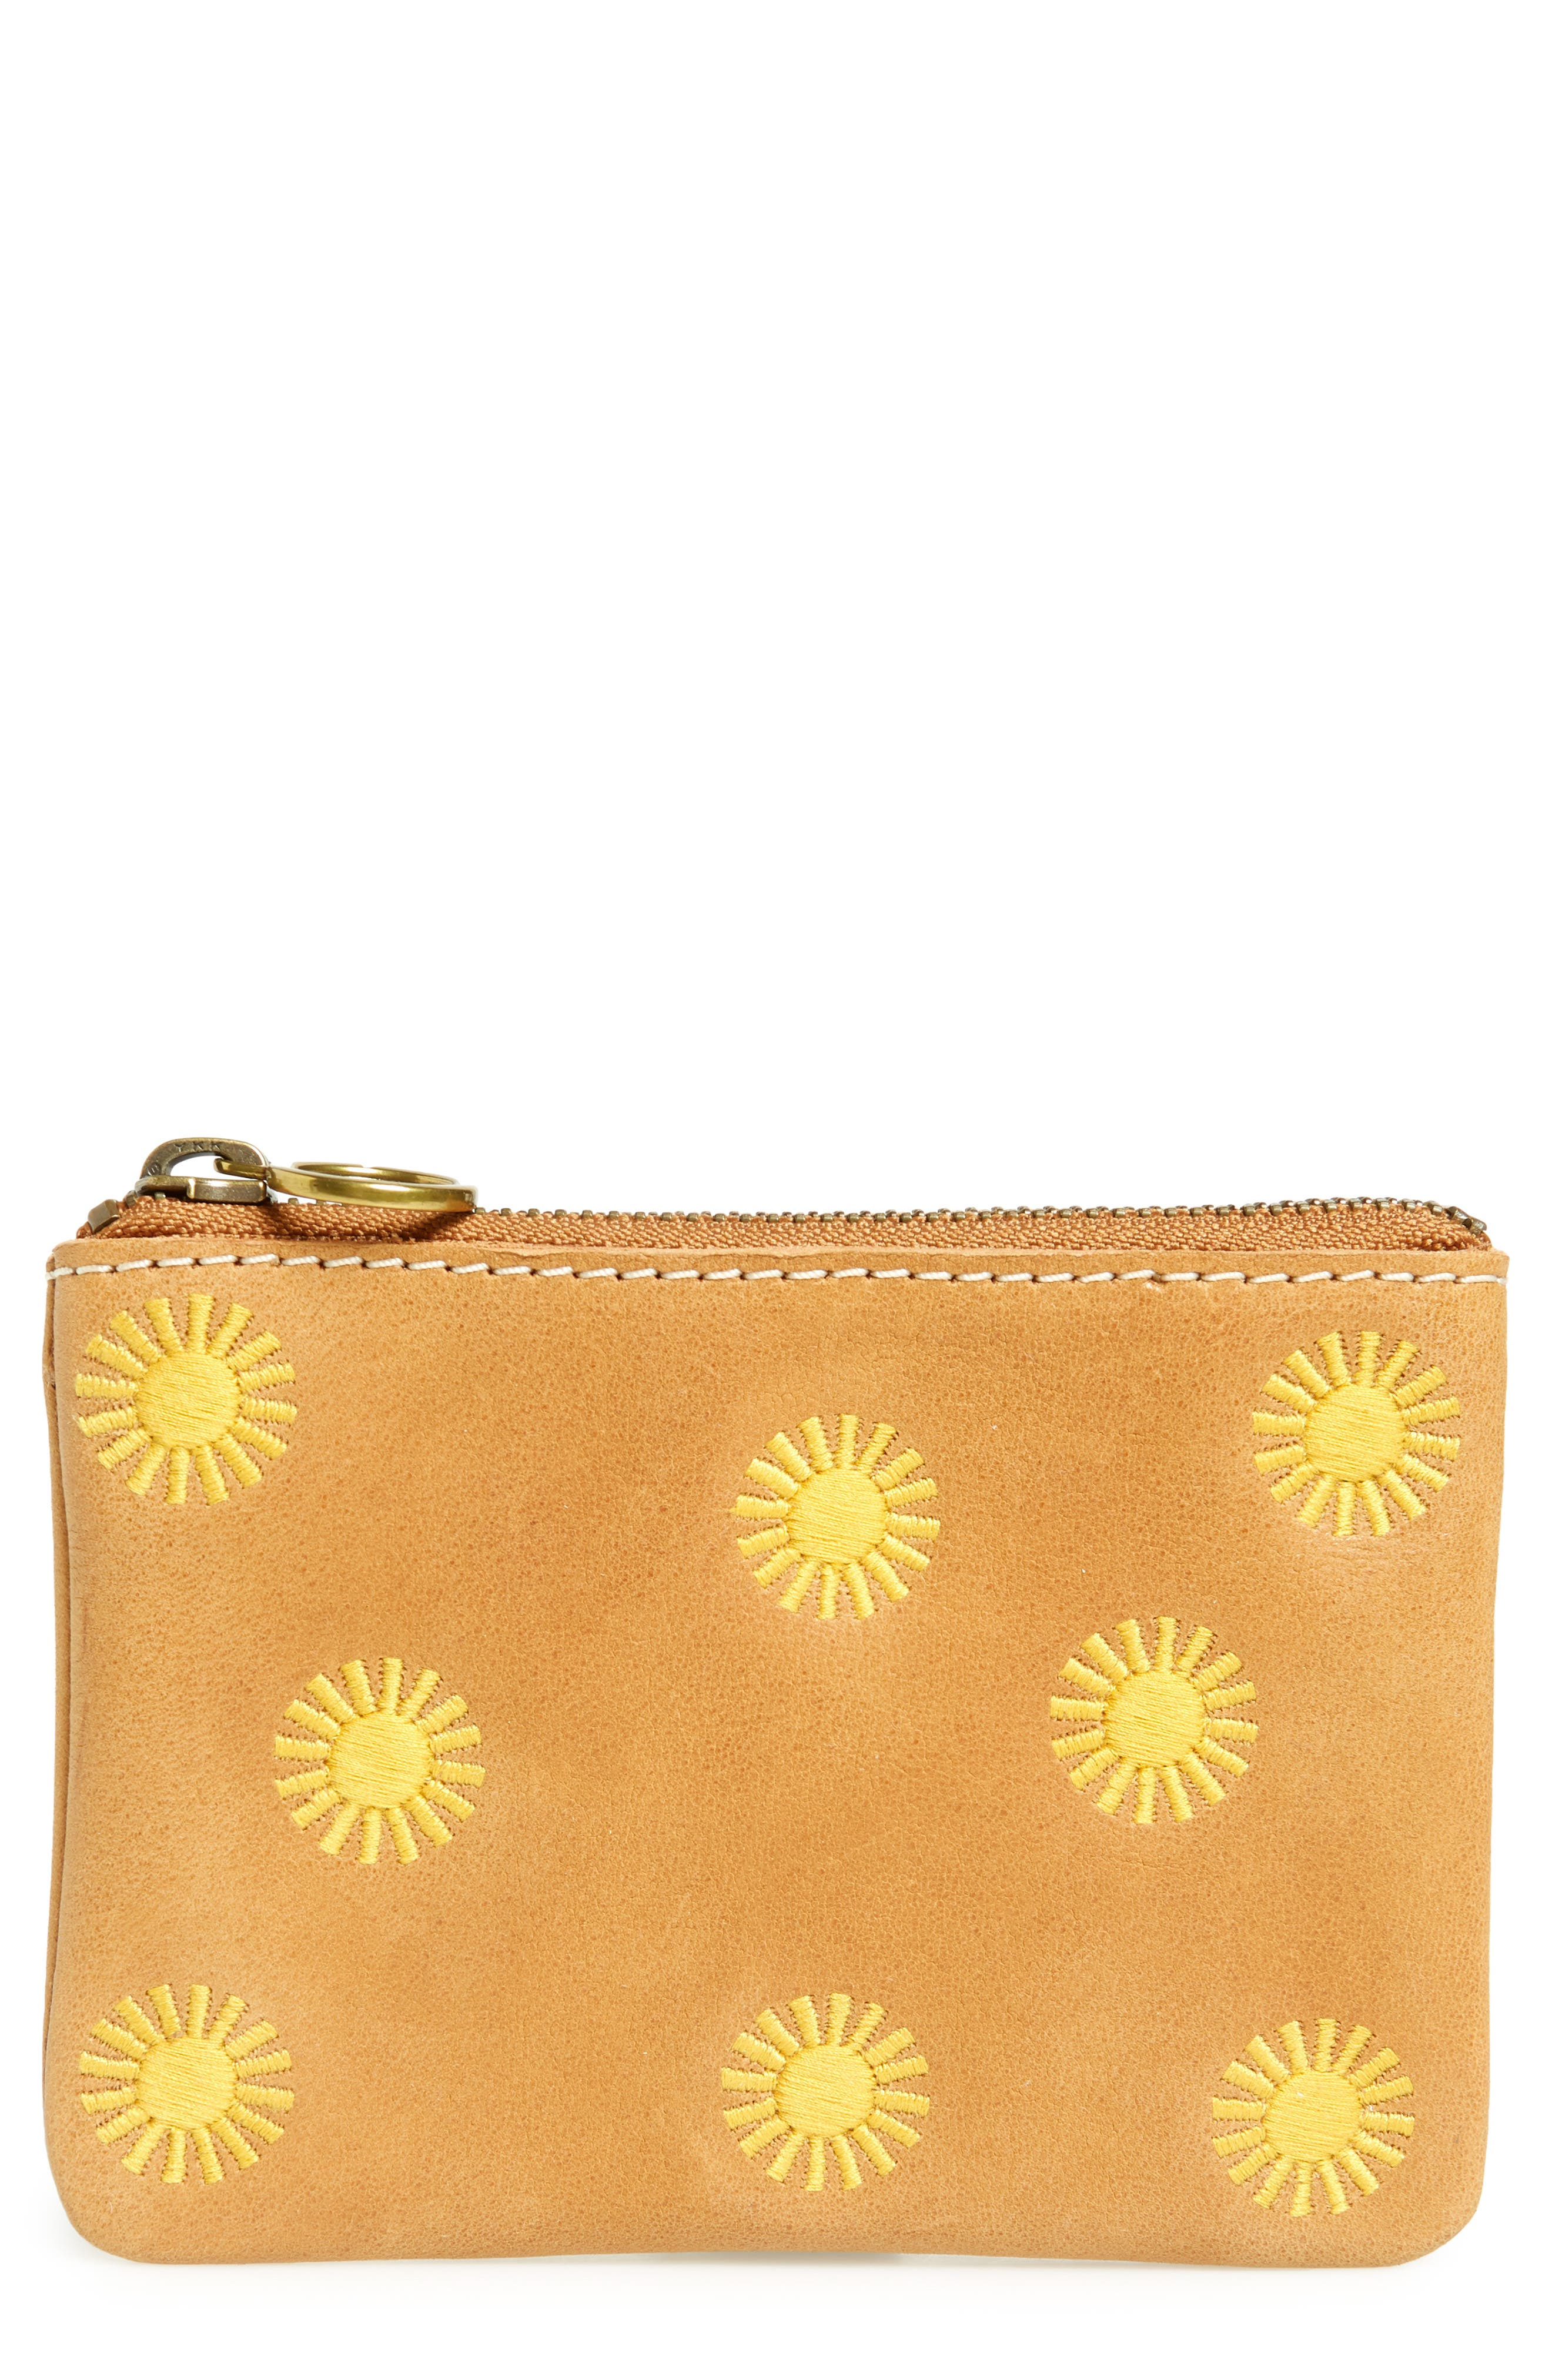 Madewell Sun Embroidered Small Flat Zip Pouch